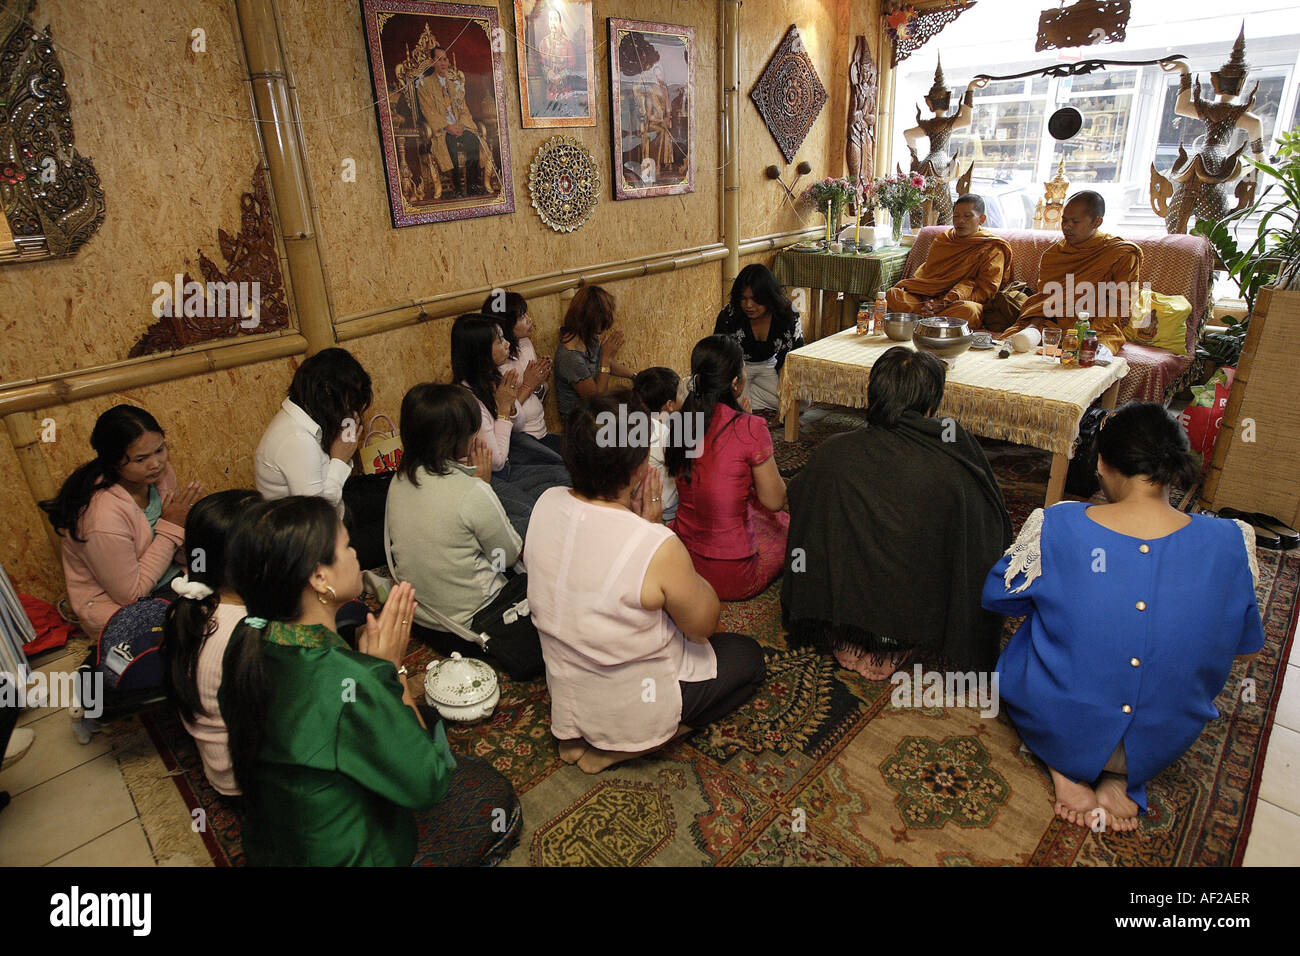 buddhistical blessing ritual in a restaurant, Germany - Stock Image